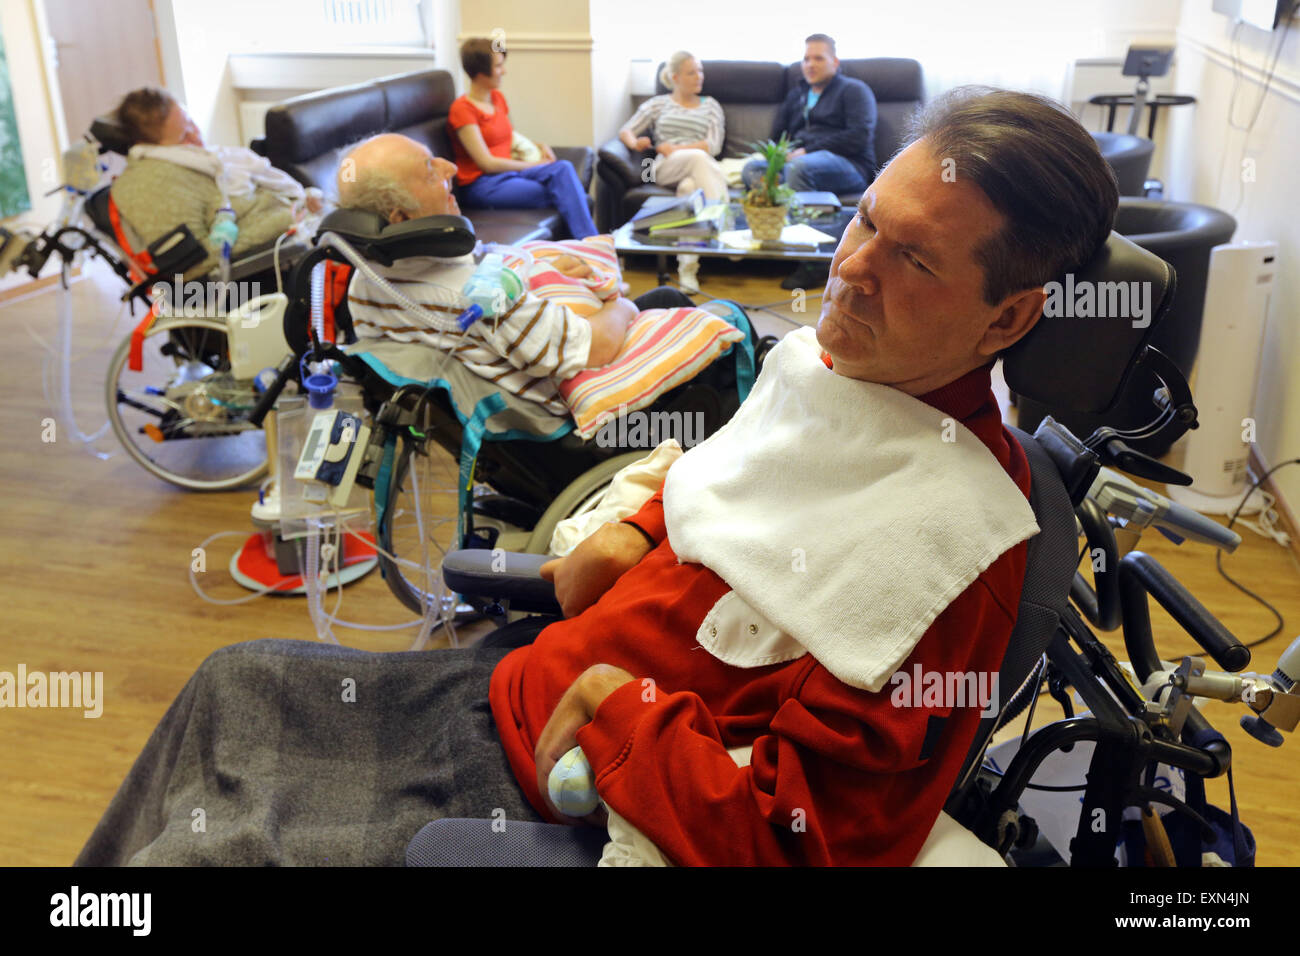 Patients in an artificial respiration unit in a care center in Essen/Germany - Stock Image